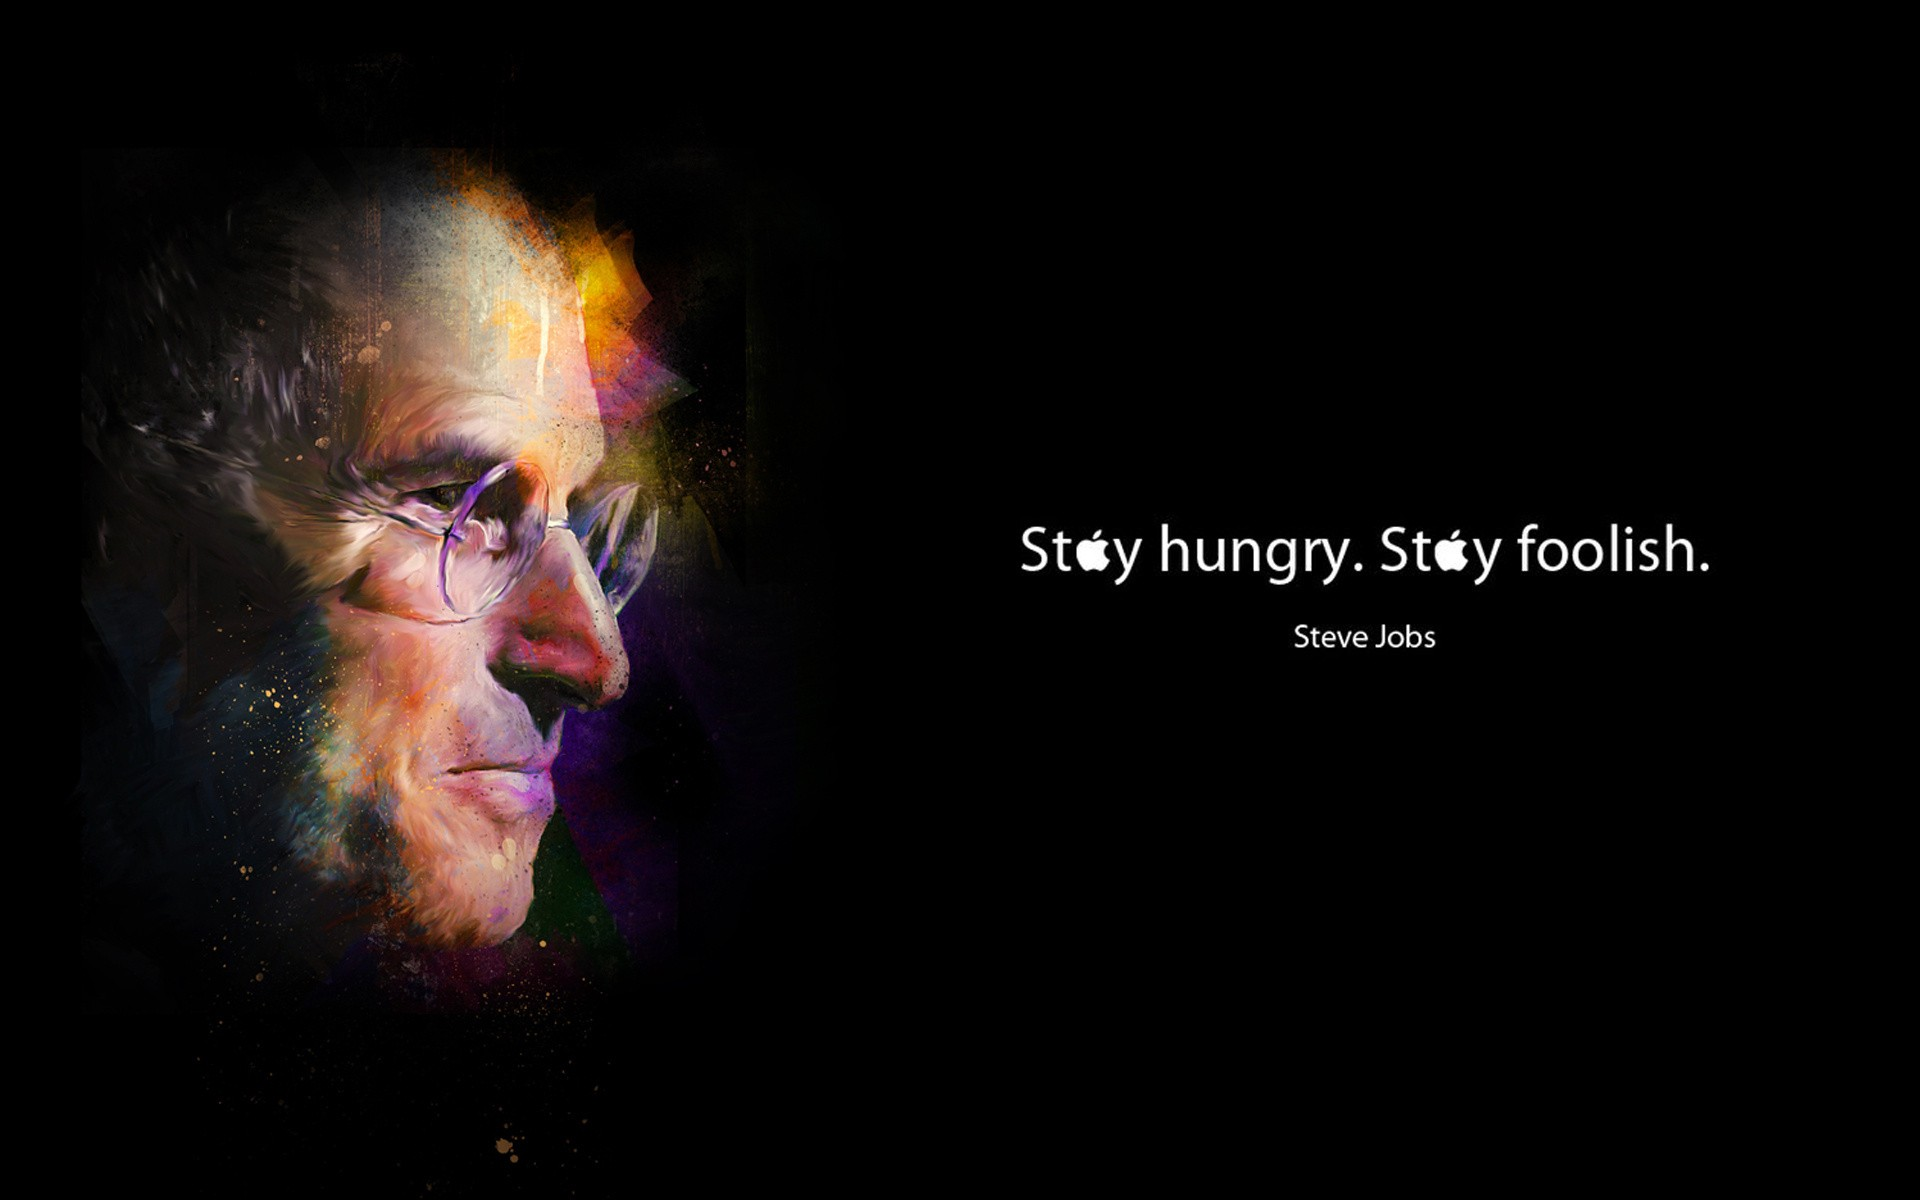 Persistence Quotes Wallpapers Celebrity Steve Jobs Hungry Foolish Wallpaper 1920x1200